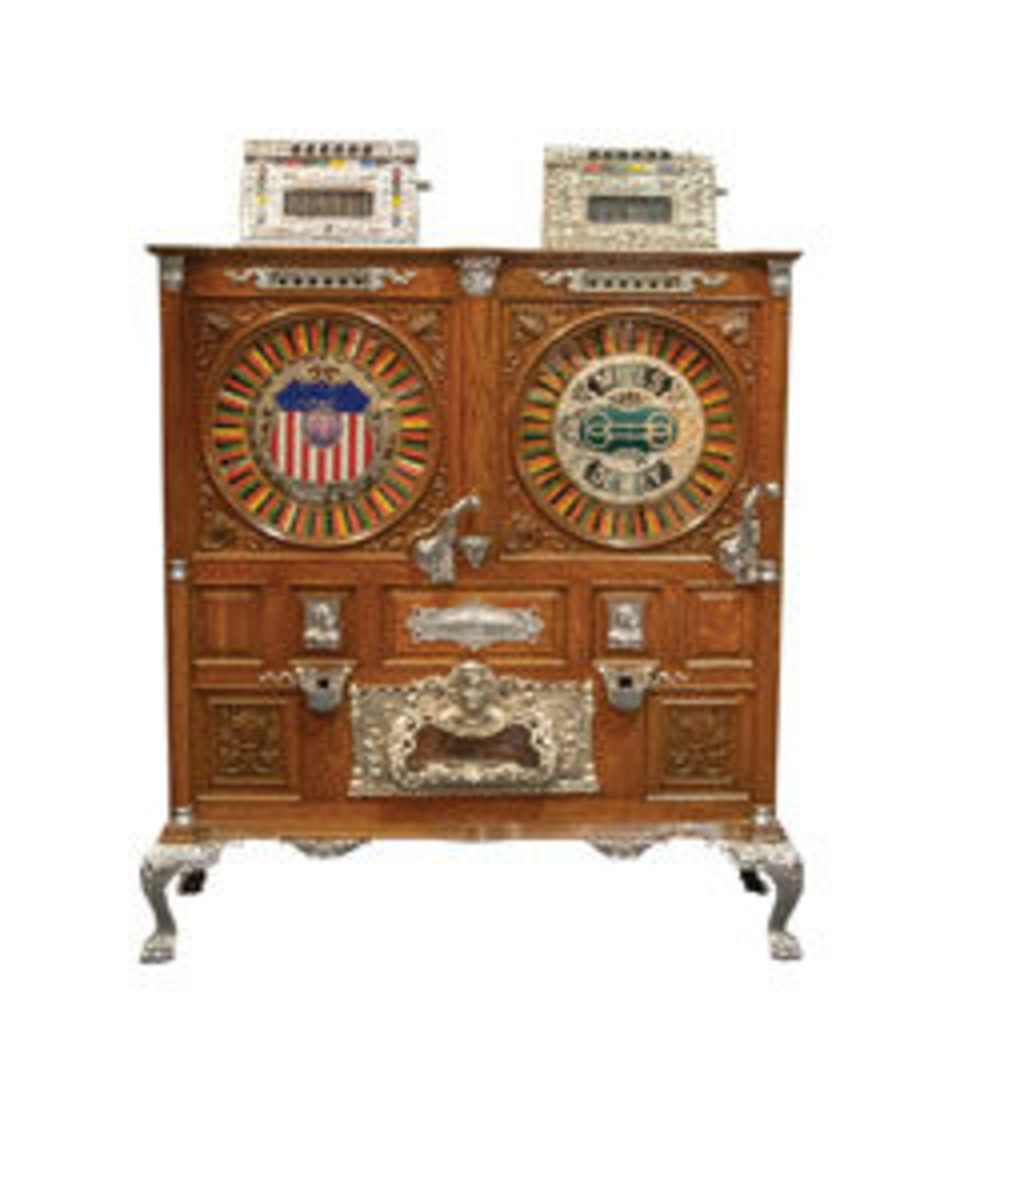 "This rare and magnificently preserved Mills Double Dewey slot machine was manufactured by The Mills Novelty Co. of Chicago, circa 1898. This early upright slot machine is the forerunner of all the tabletop machines that followed and made Chicago the ""Slot Machine Capitol of the World."" One side operates with nickels, while its twin takes quarters only; a rather hefty fee for the early 1900s; estimate: $60,000-$70,000"